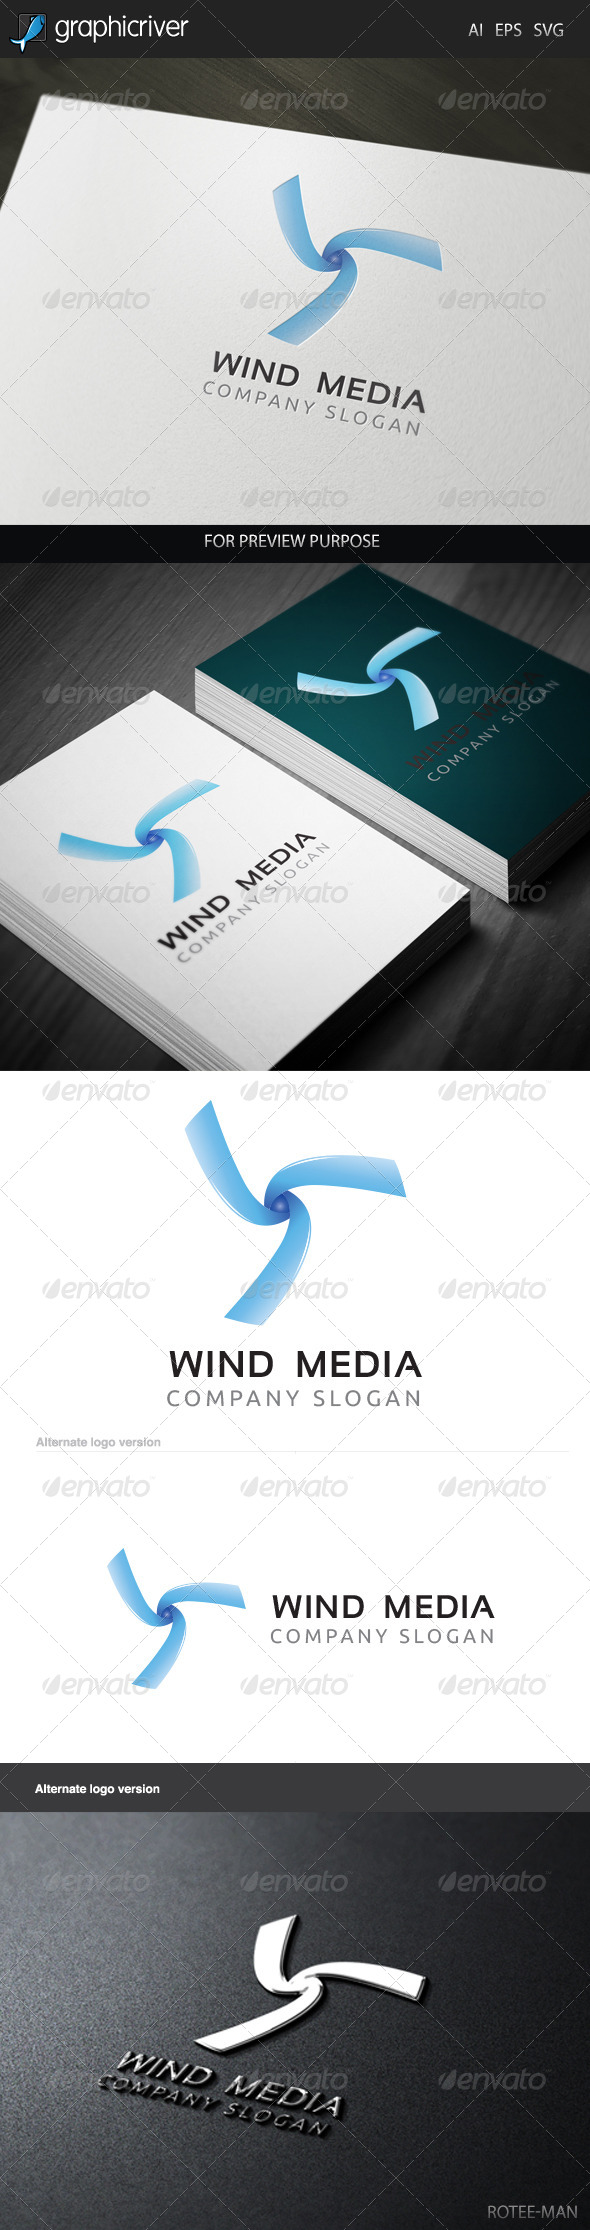 Wind Media 2 Logo - Letters Logo Templates